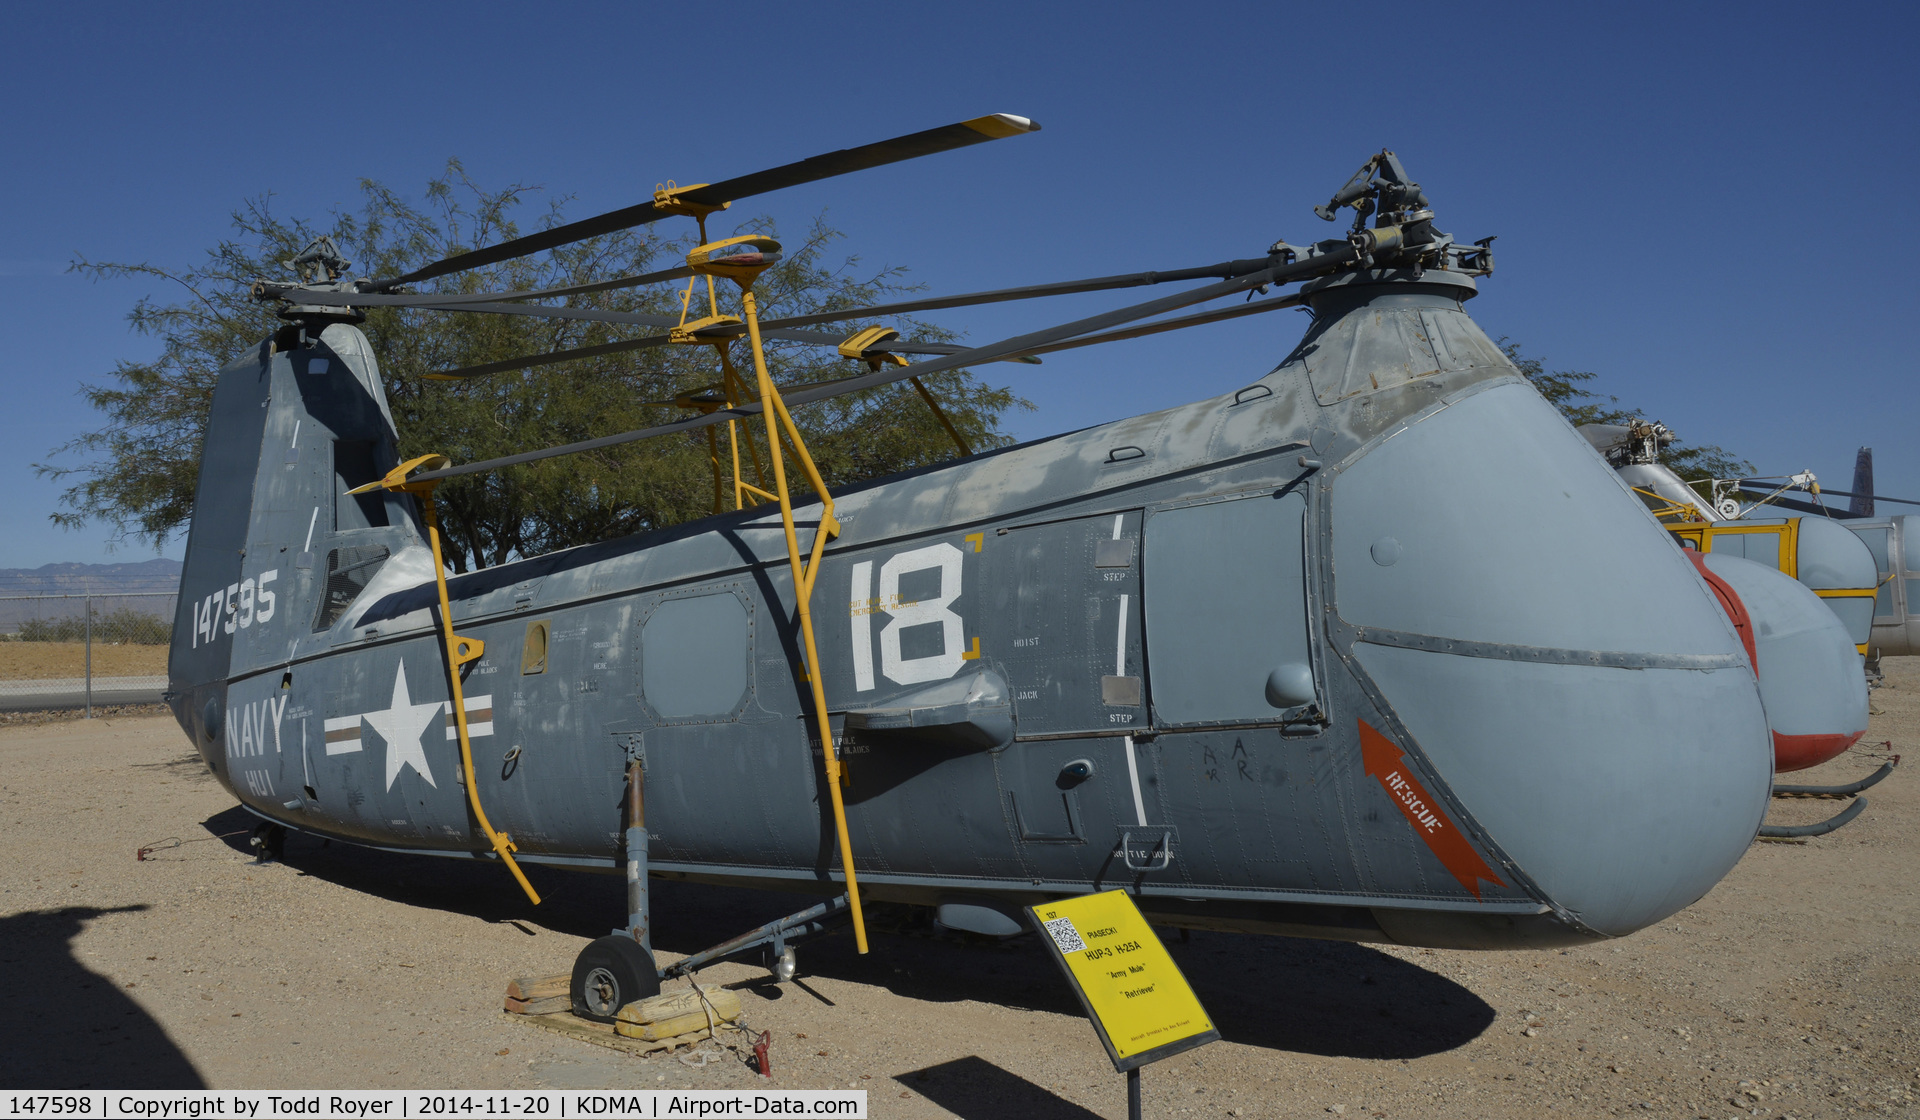 147598, Piasecki HUP-3 Retriever C/N Not found 147598, On display at the Pima Air and Space Museum